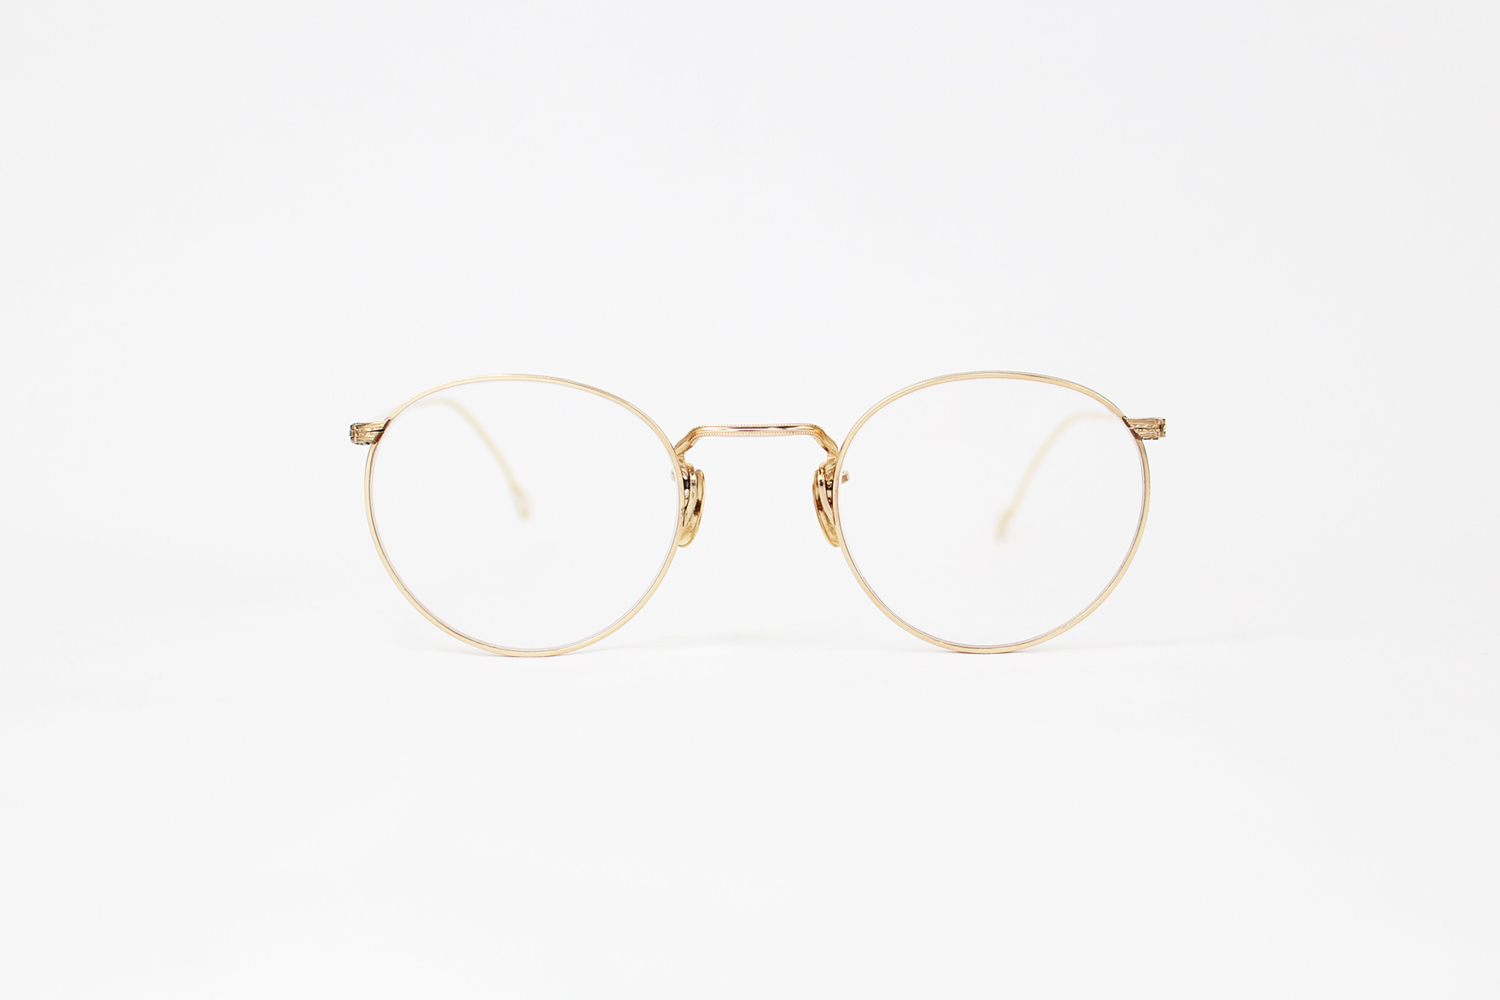 American Optical Company /Full Frame Ful-Vue - YG|The Spectacle